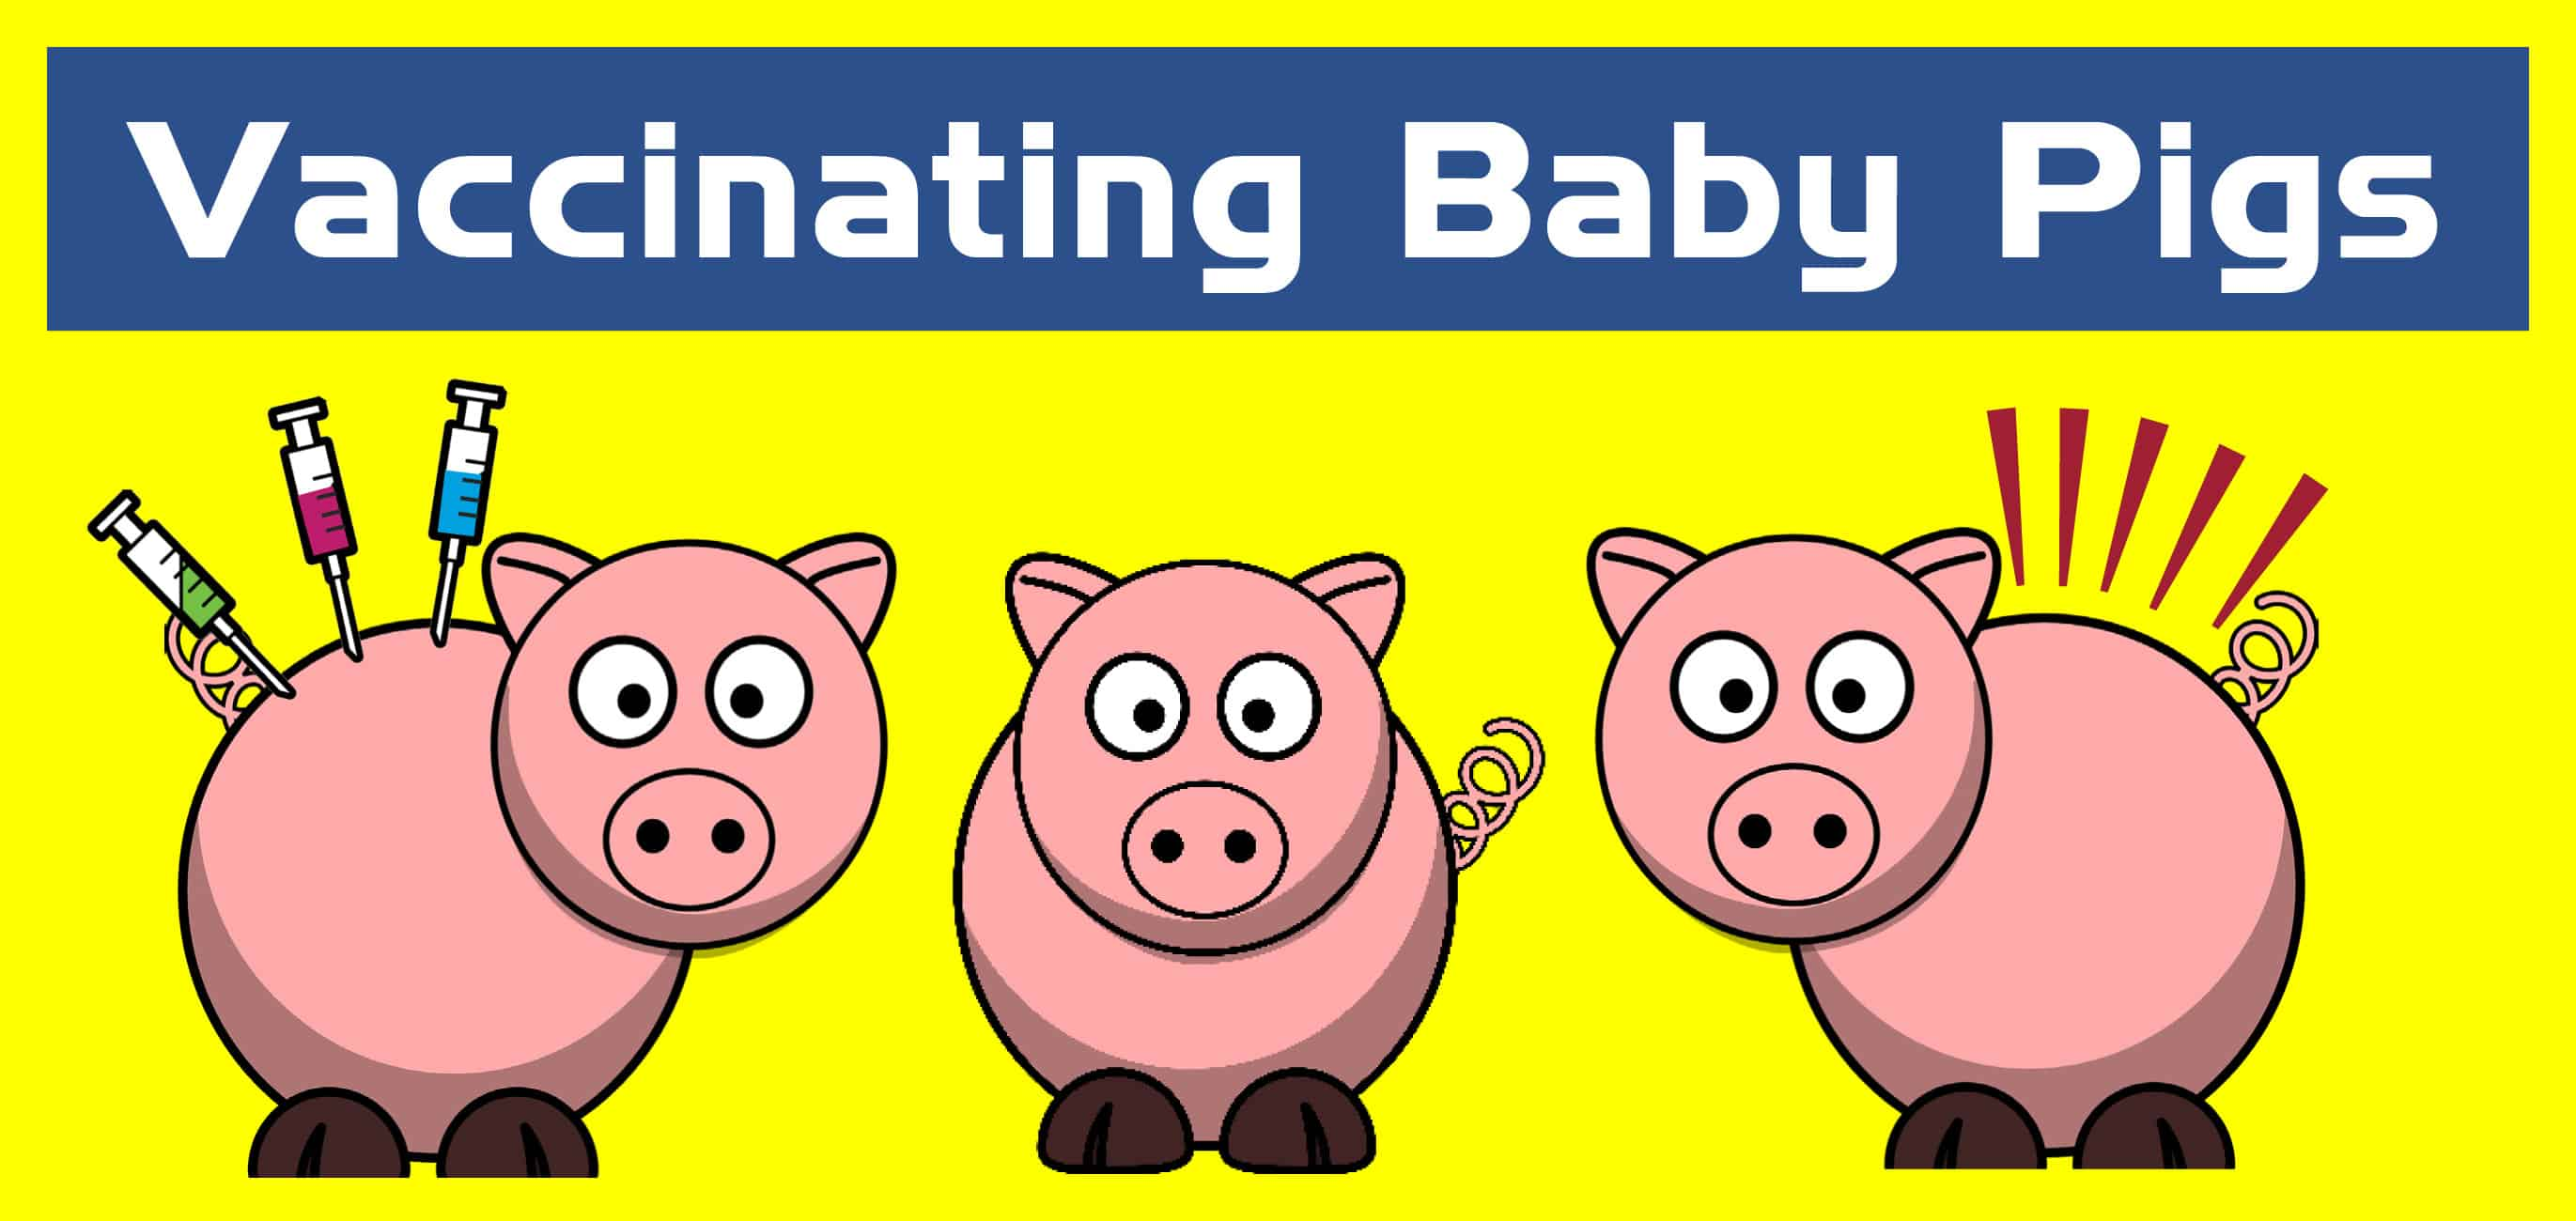 Vaccination Protocols for Baby Pigs